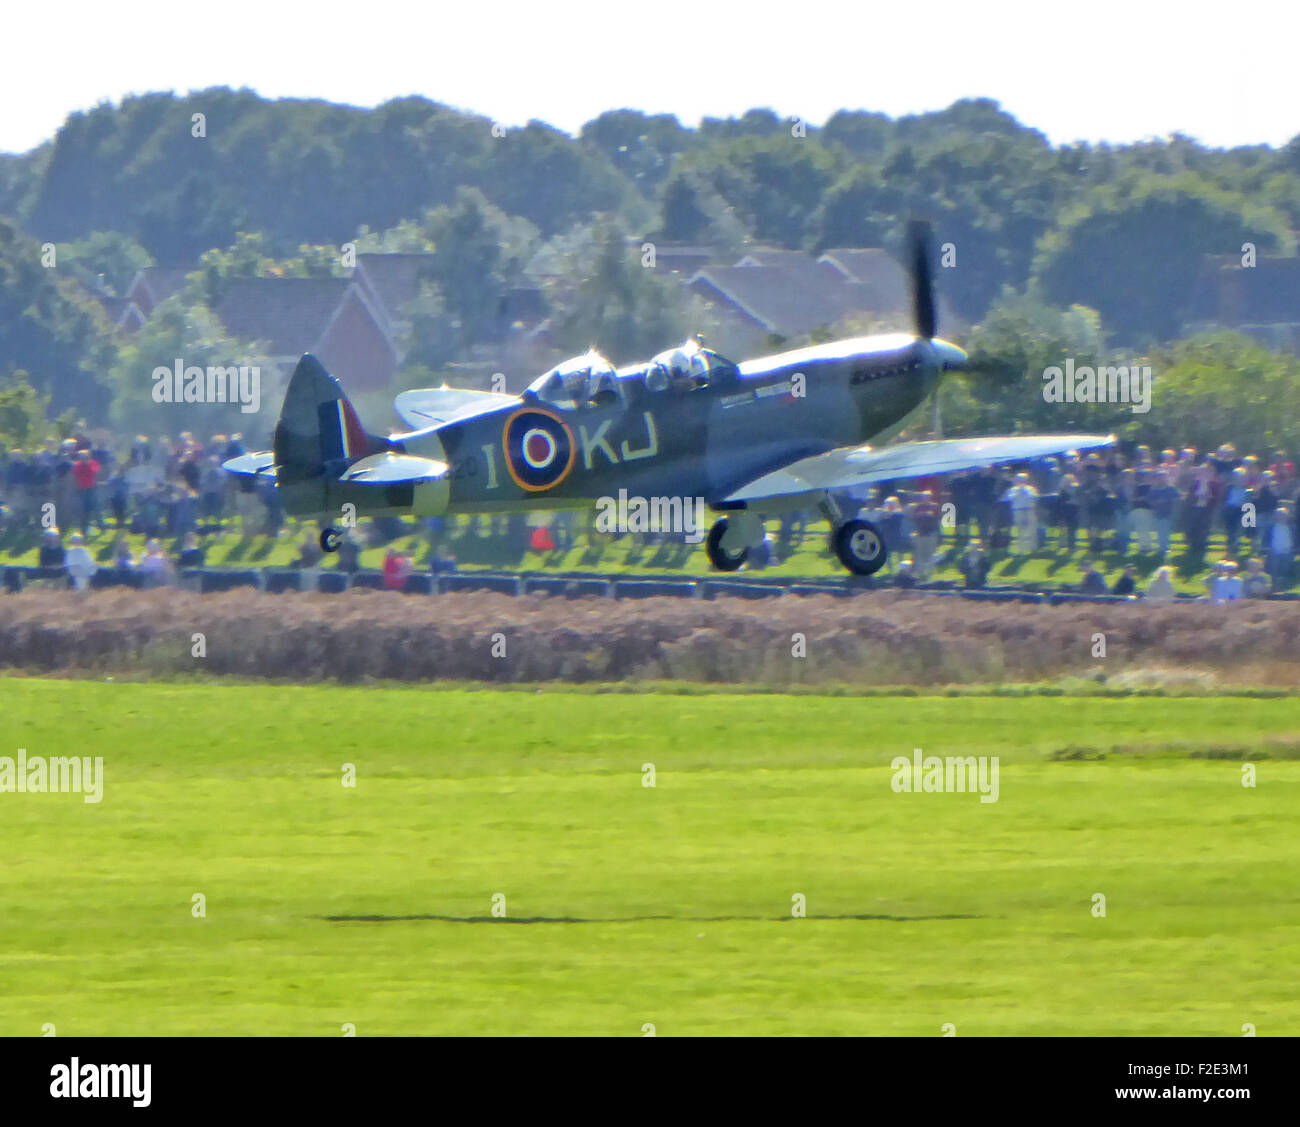 A Vickers Supermarine Spitfire Two Seat Monoplanefighter trainer taking off at Goodwood for the Battle of Britain - Stock Image